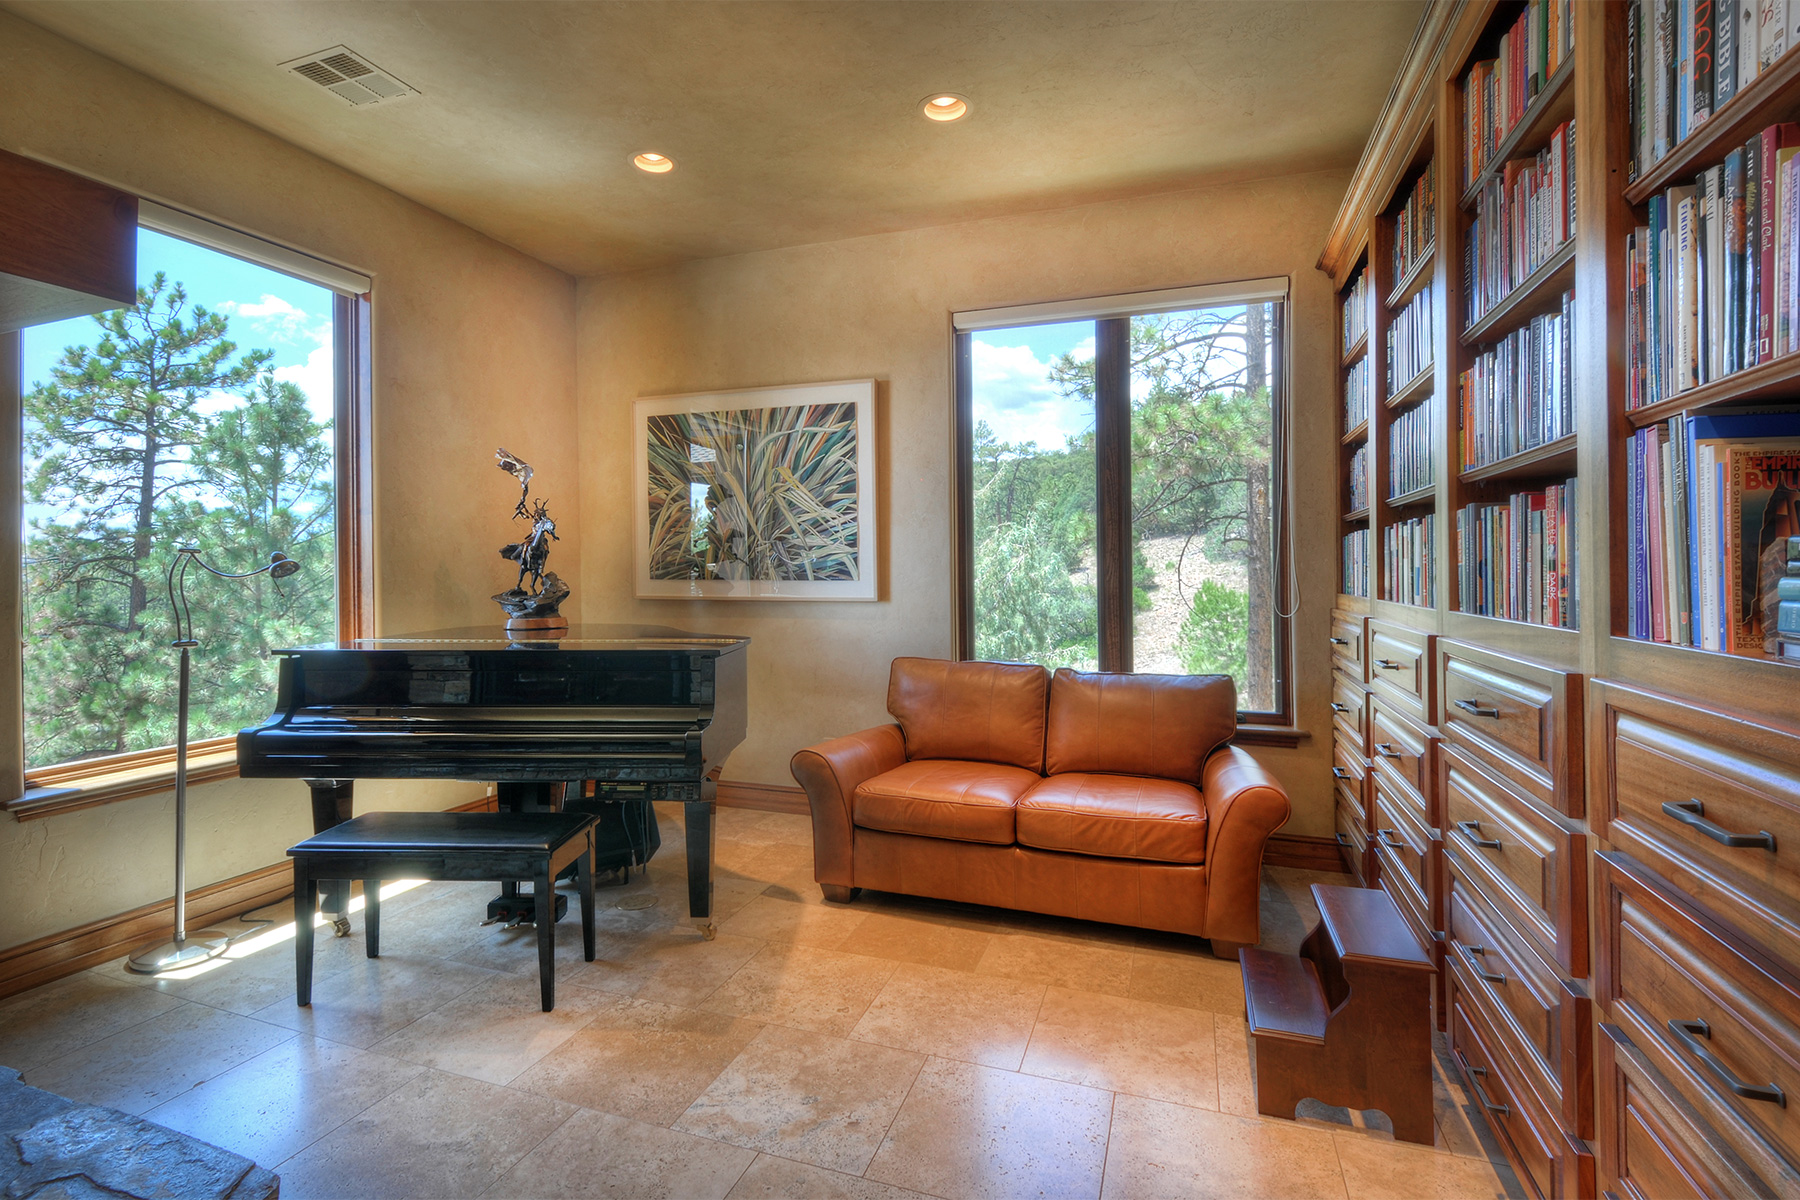 Additional photo for property listing at 1351 Durango Cliffs Drive 1351 Durango Cliffs Drive 杜兰戈, 科罗拉多州 81301 美国